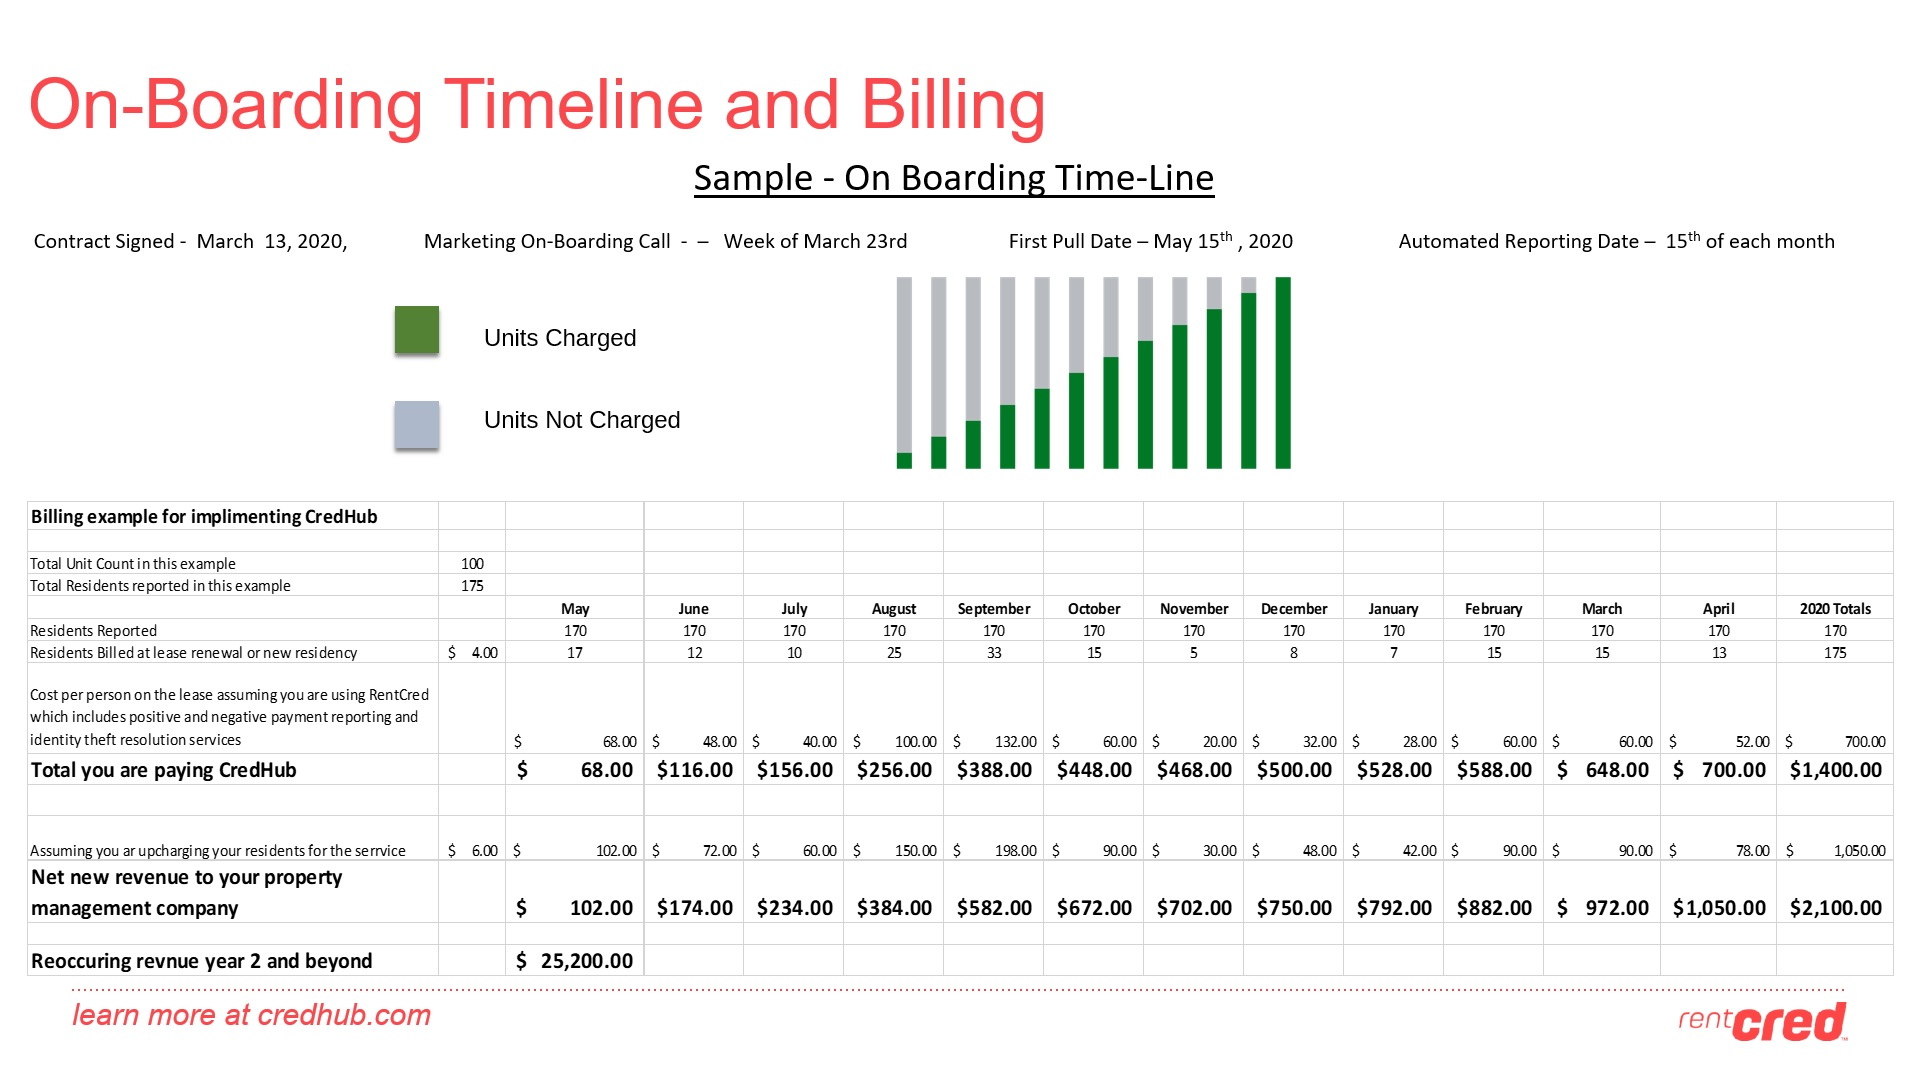 On-Boarding Timeline and Billing